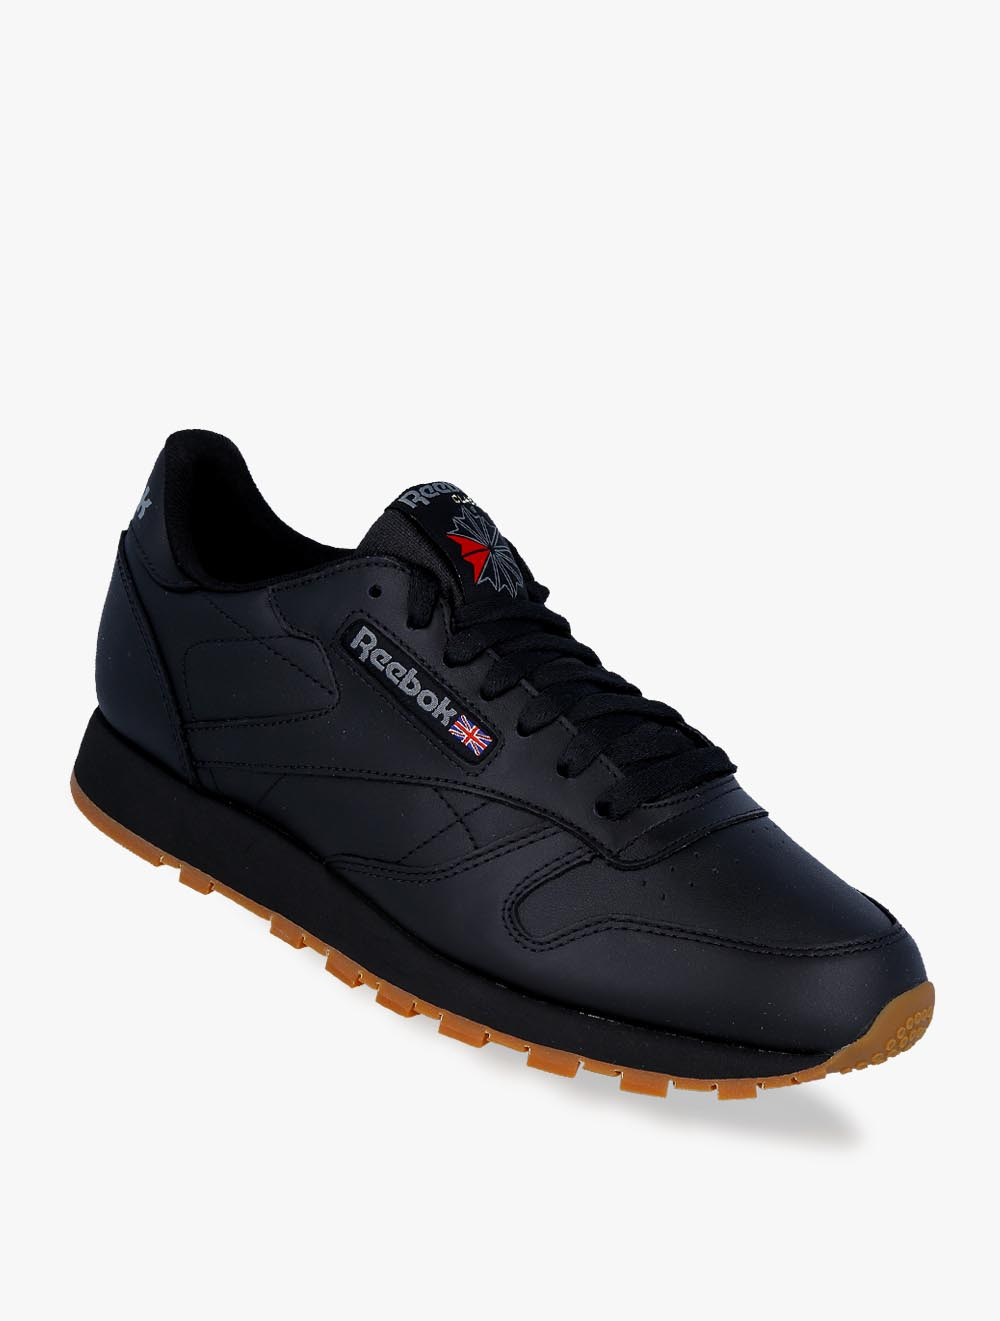 From Indonesia Sports On Shoes In Buy Reebok 80yvmnONPw